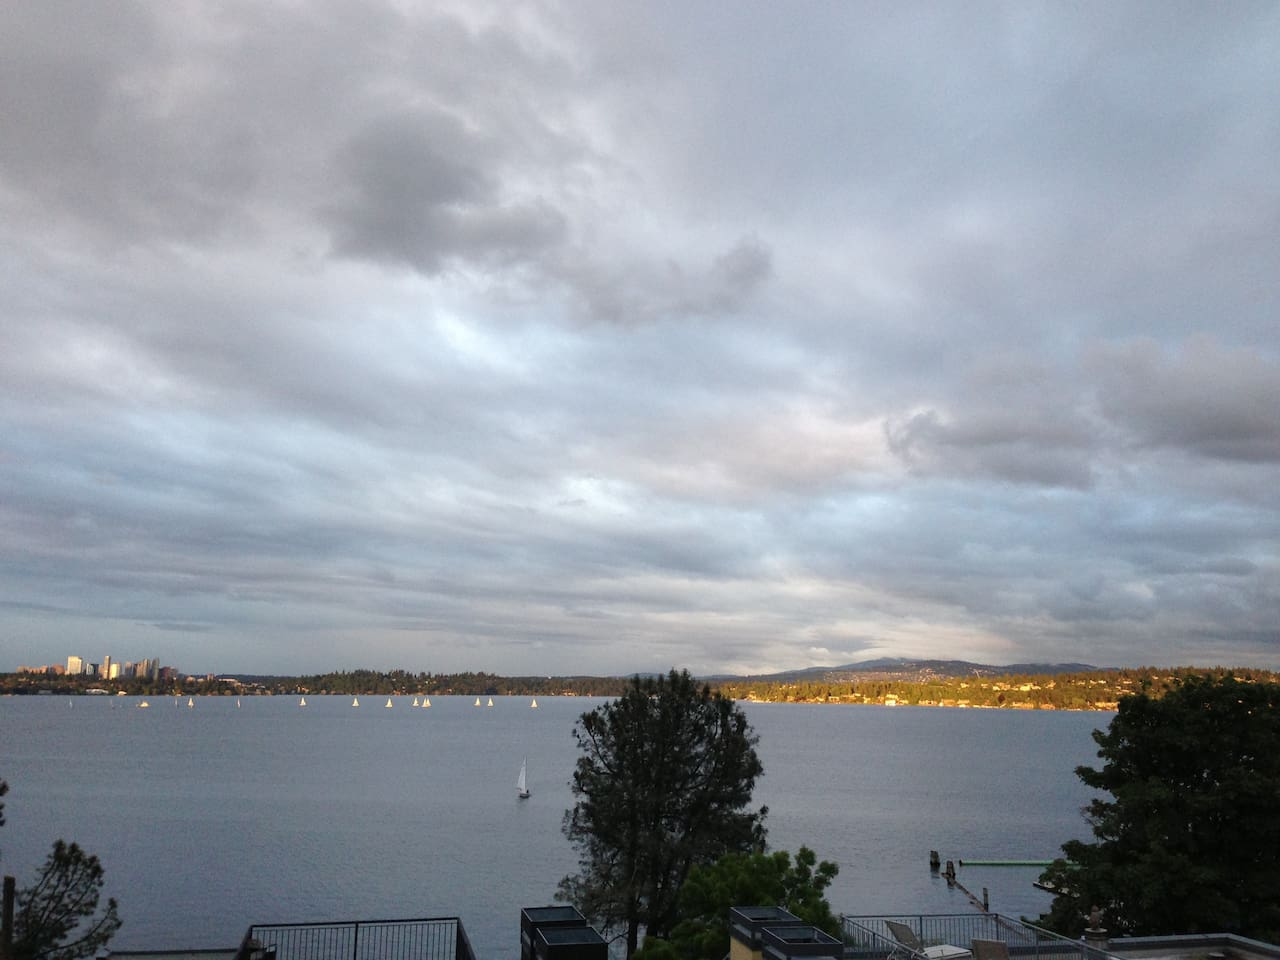 Sweeping views of Lake Washington and the Bellevue skyline